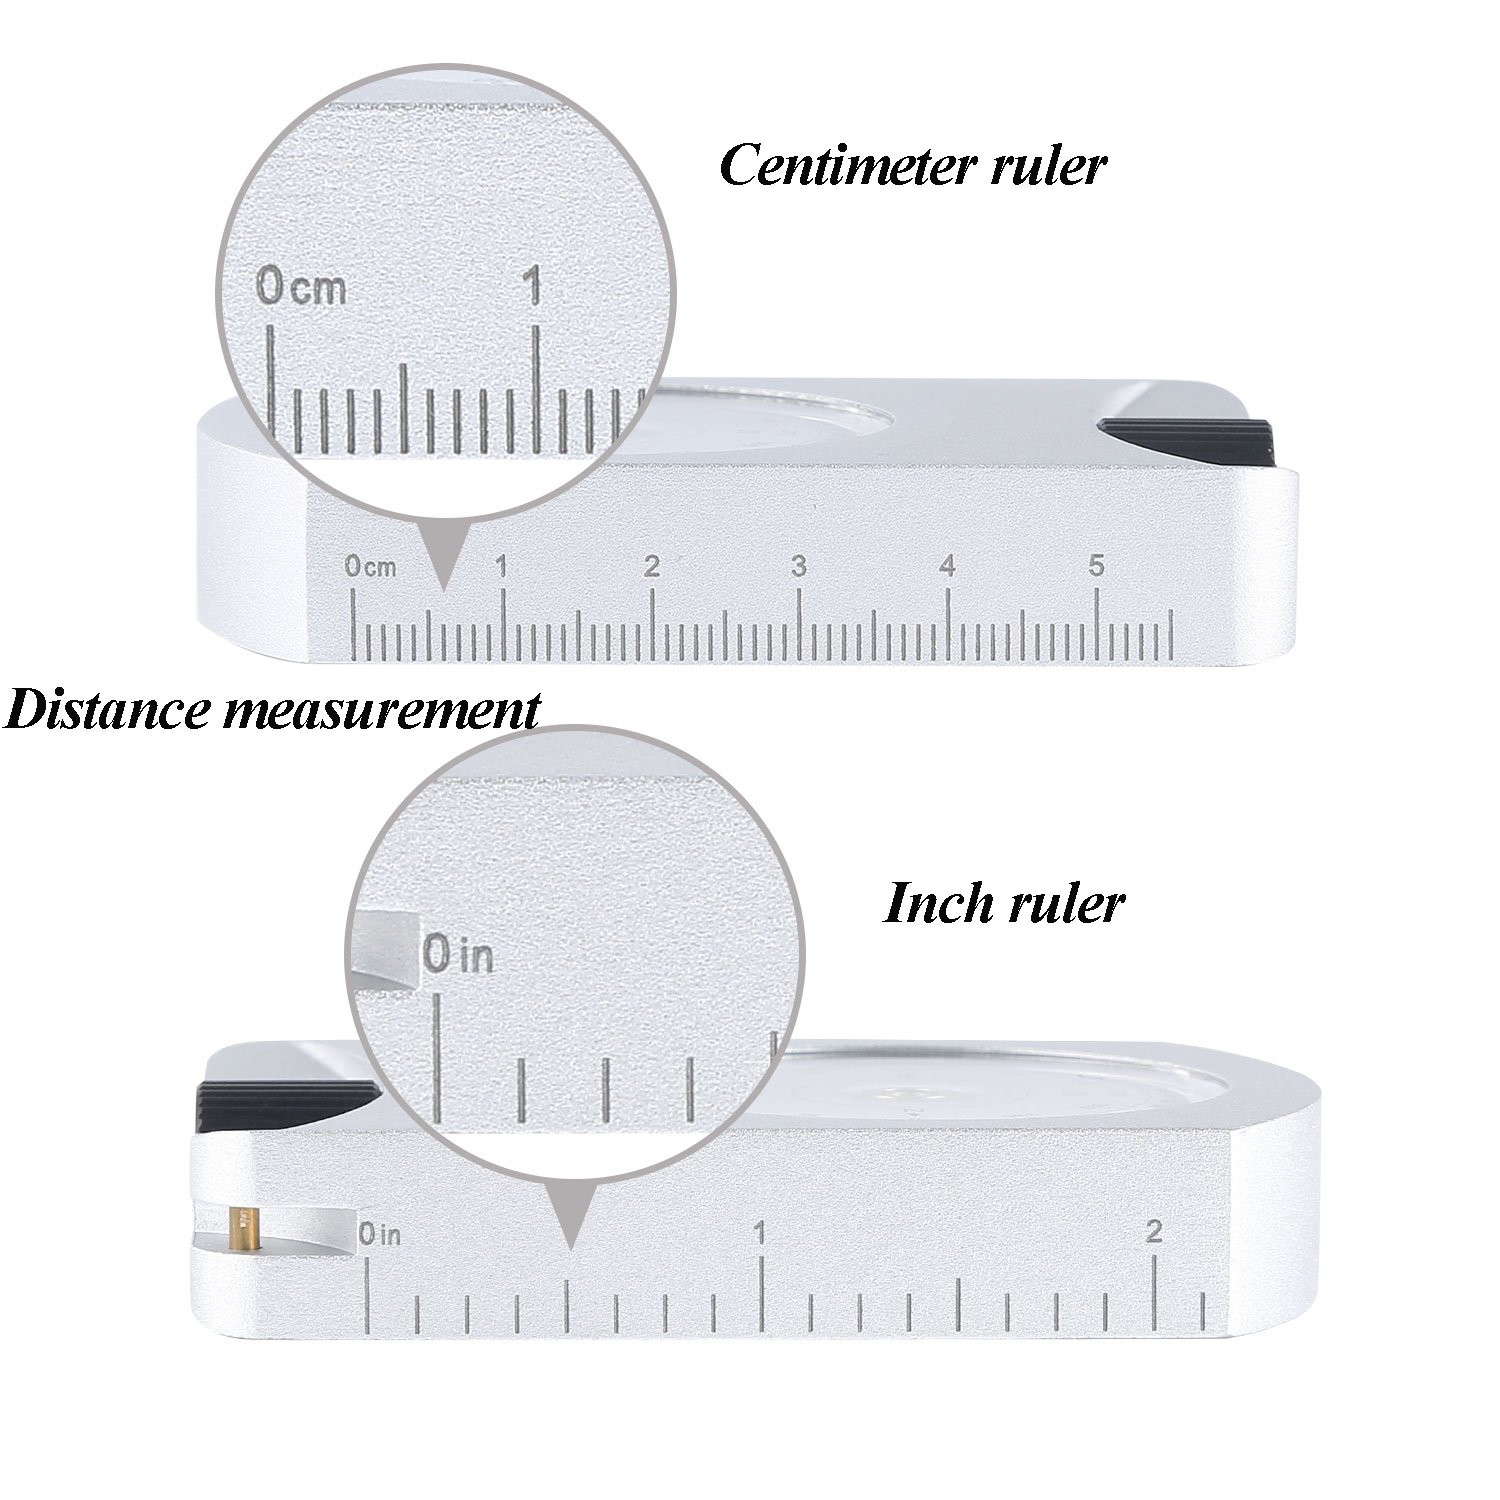 Ueasy Professional Aluminum Accurate Altimeter Compact Handheld Clinometer for Measuring Heights Slopes Angles Silver by Ueasy (Image #2)